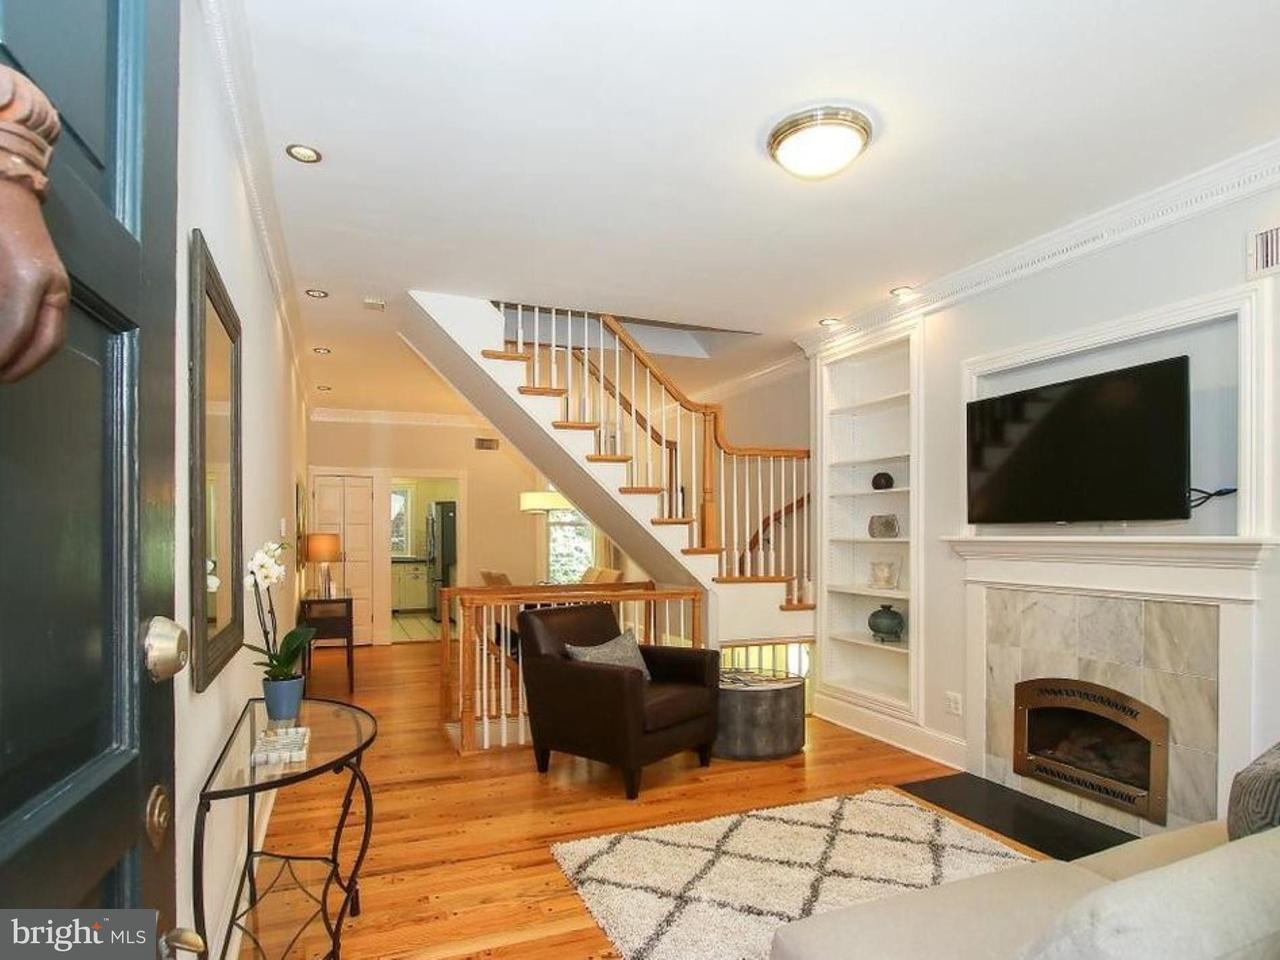 Additional photo for property listing at 1029 30th St NW  Washington, District Of Columbia 20007 United States